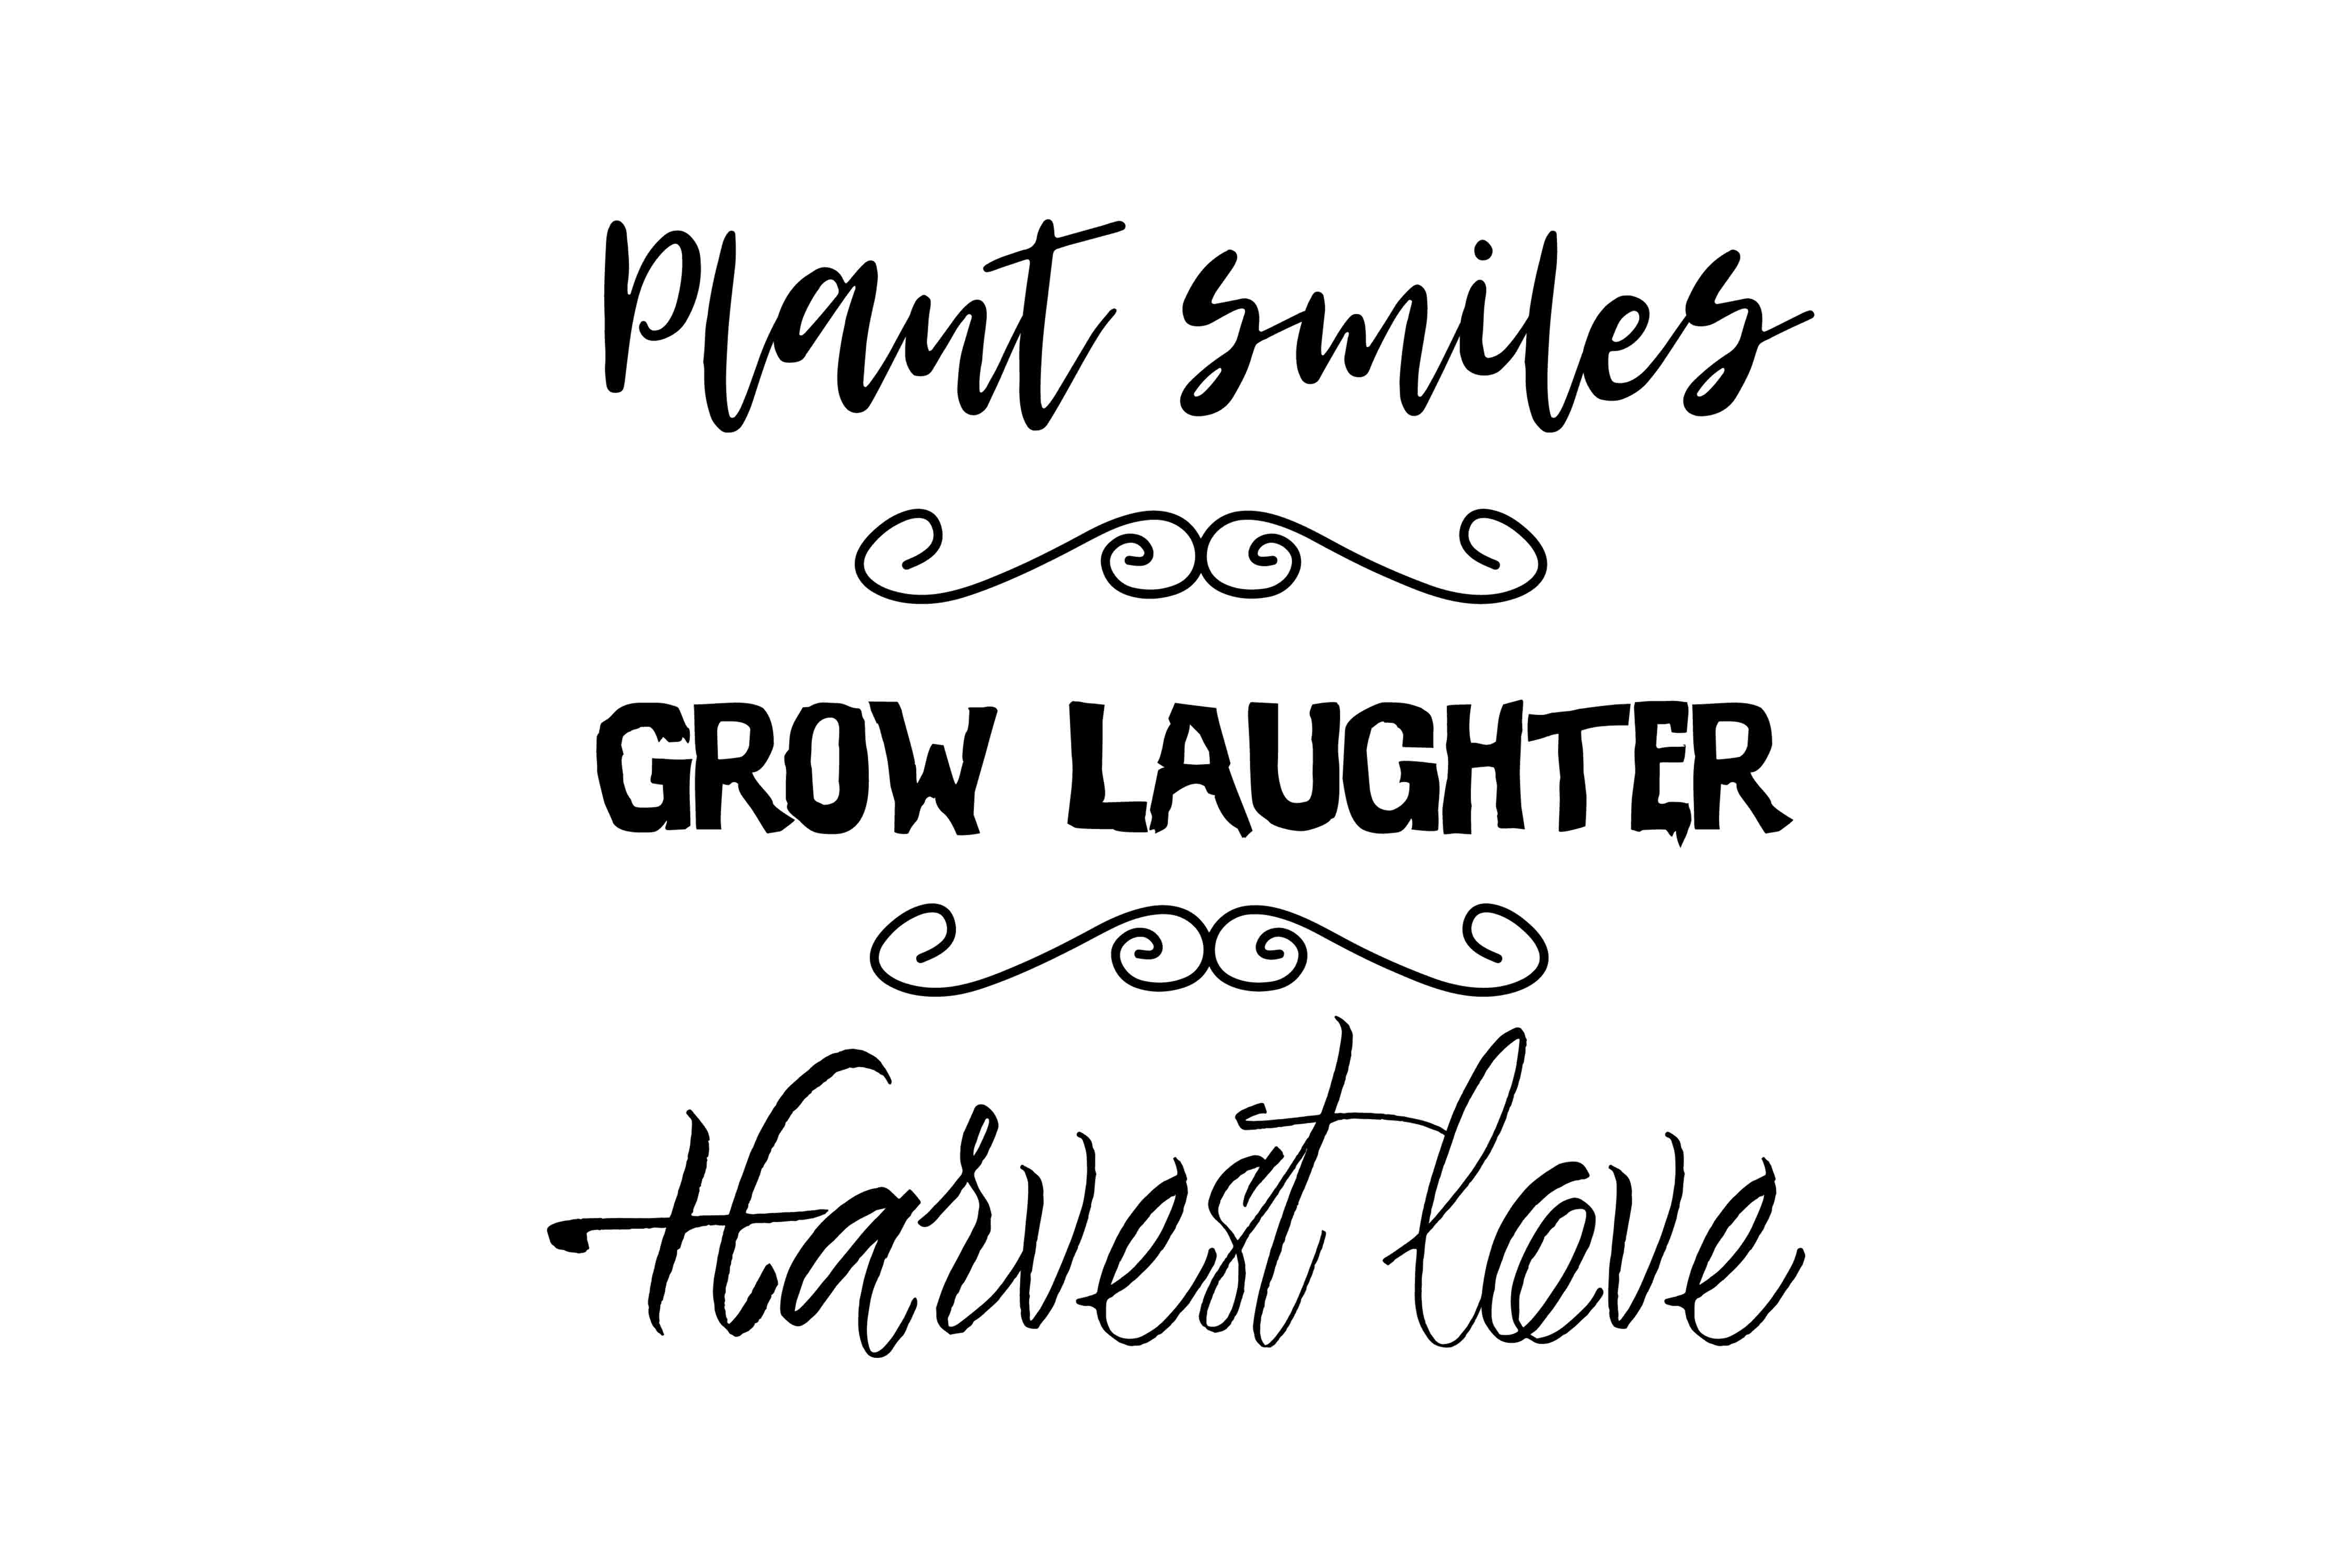 Download Free Plant Smiles Grow Laughter Harvest Love Graphic By Twelvepapers for Cricut Explore, Silhouette and other cutting machines.